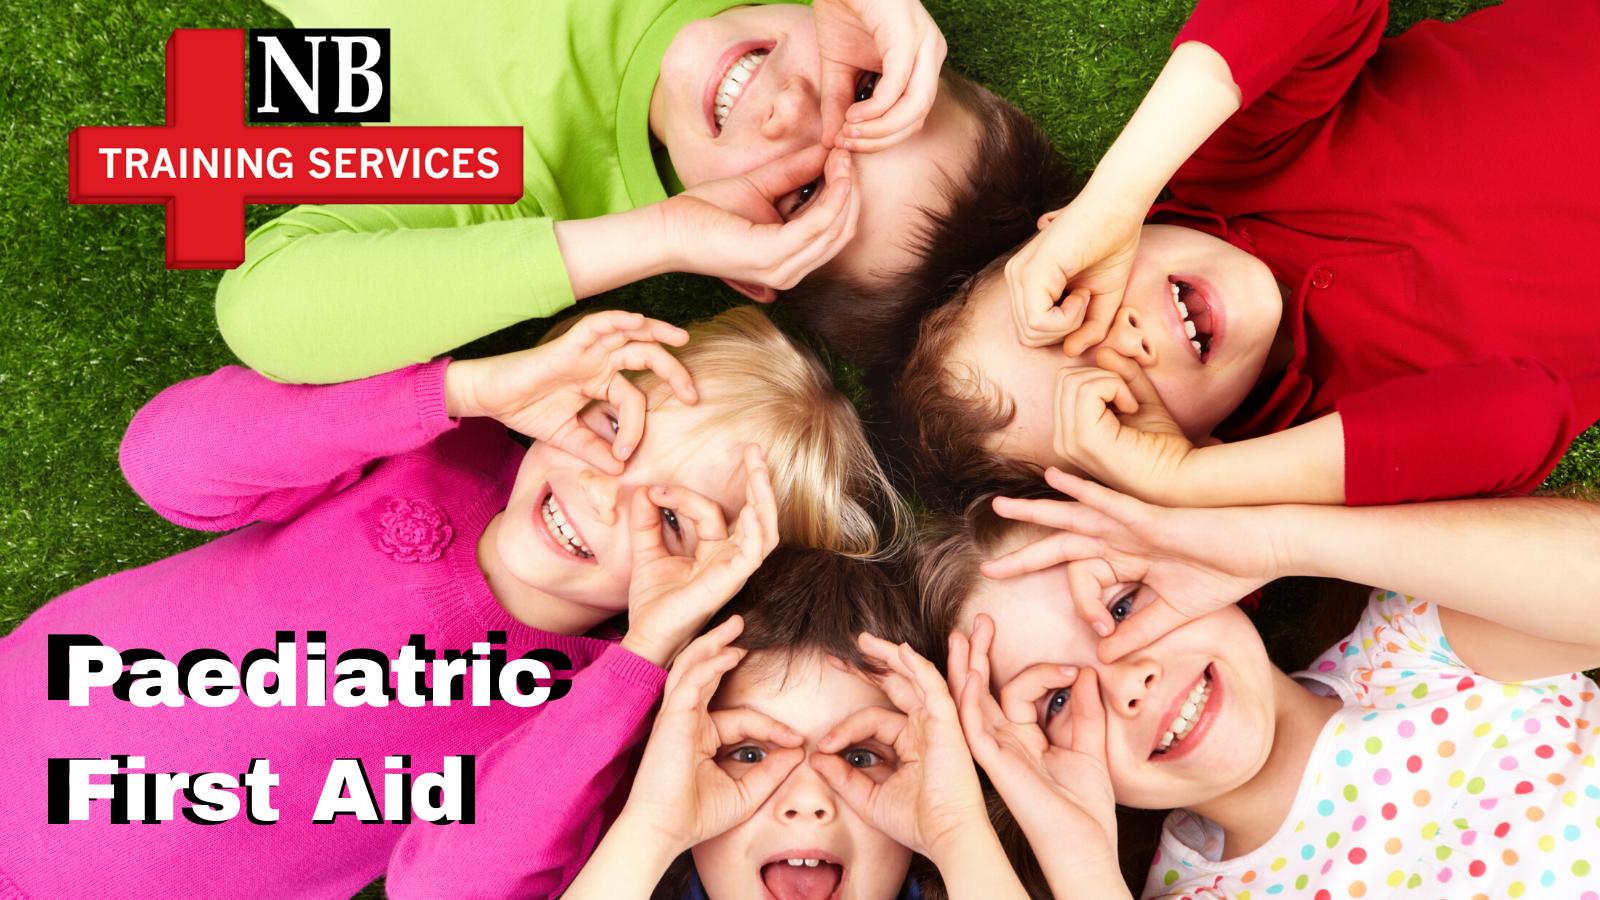 First Aid Children Family Kids